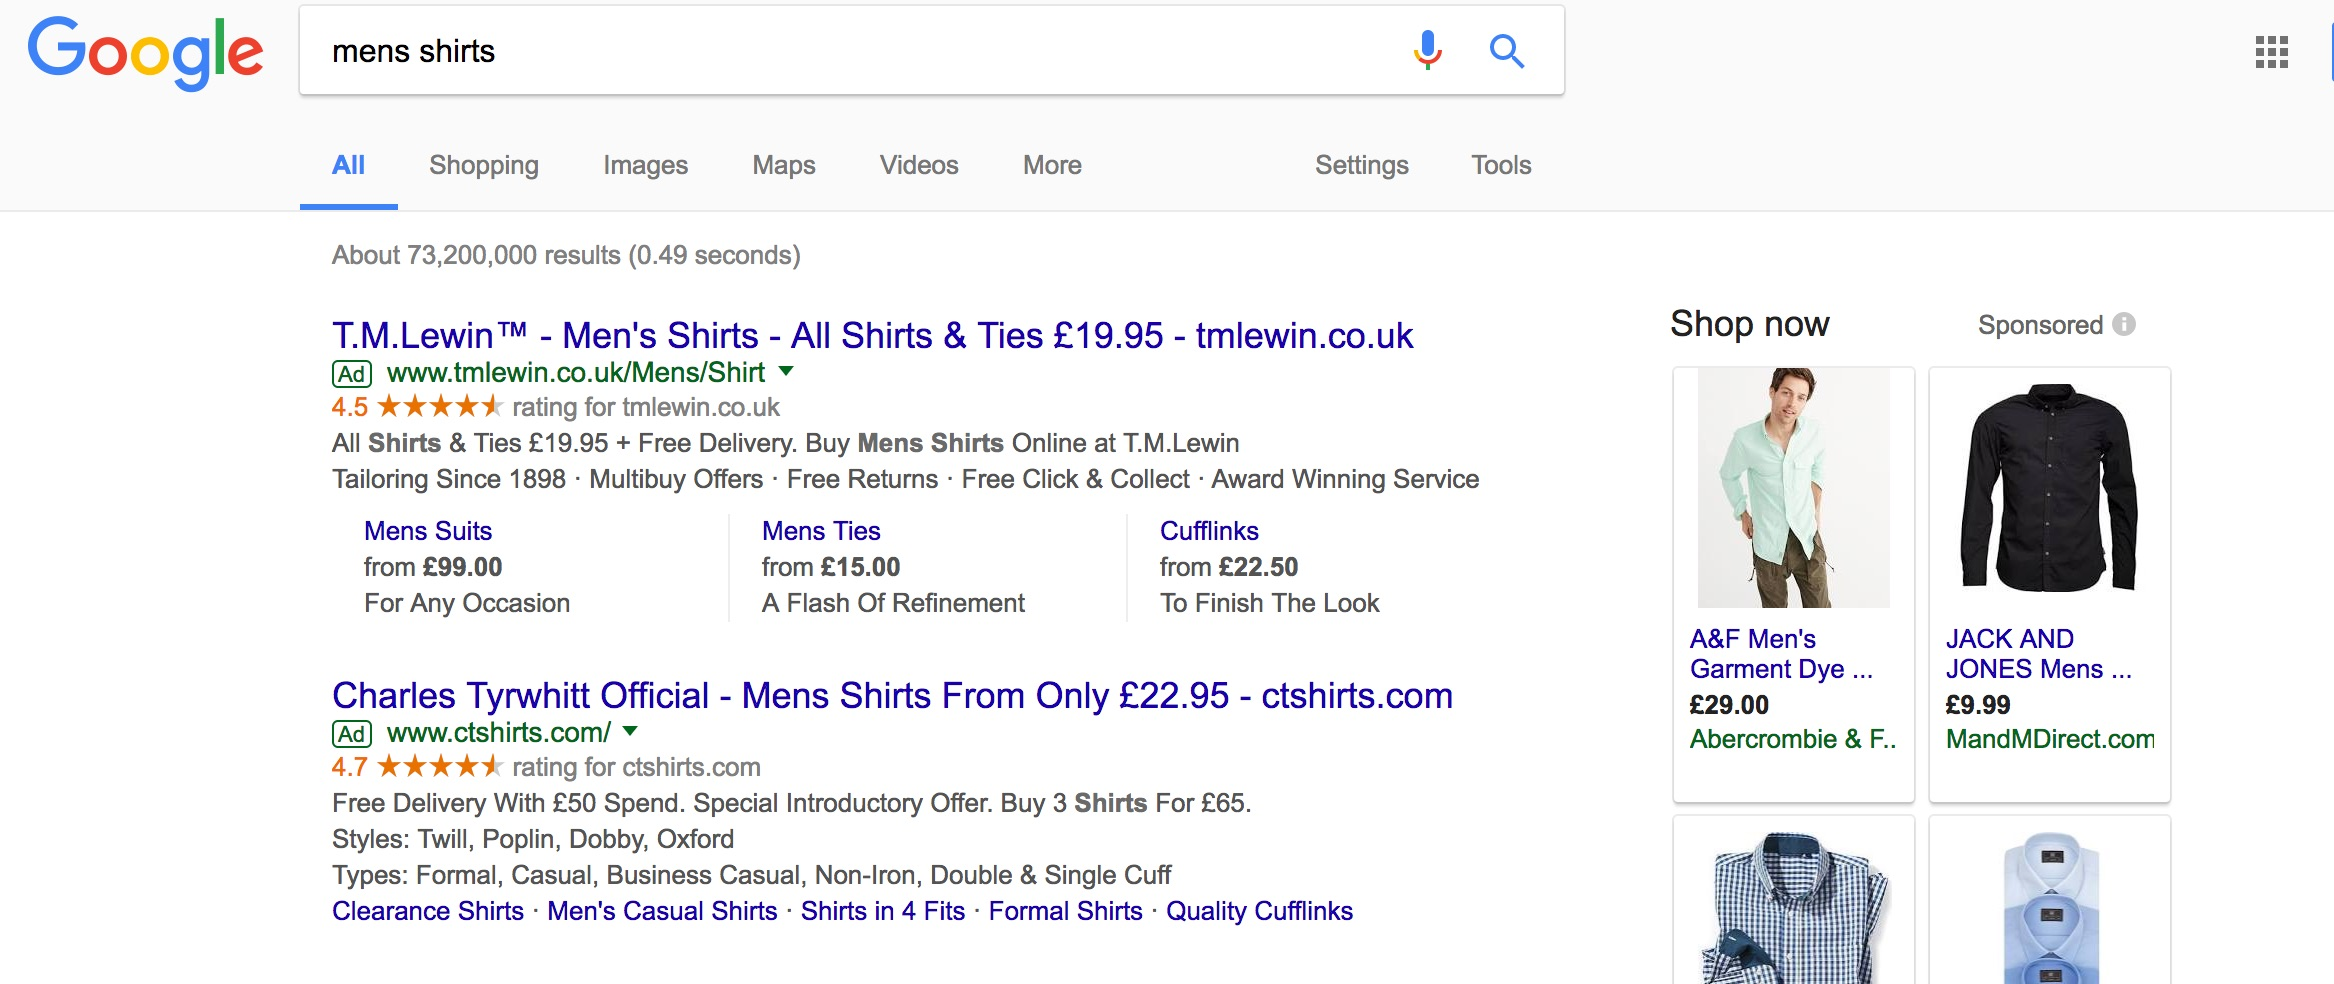 google adwords paid search results